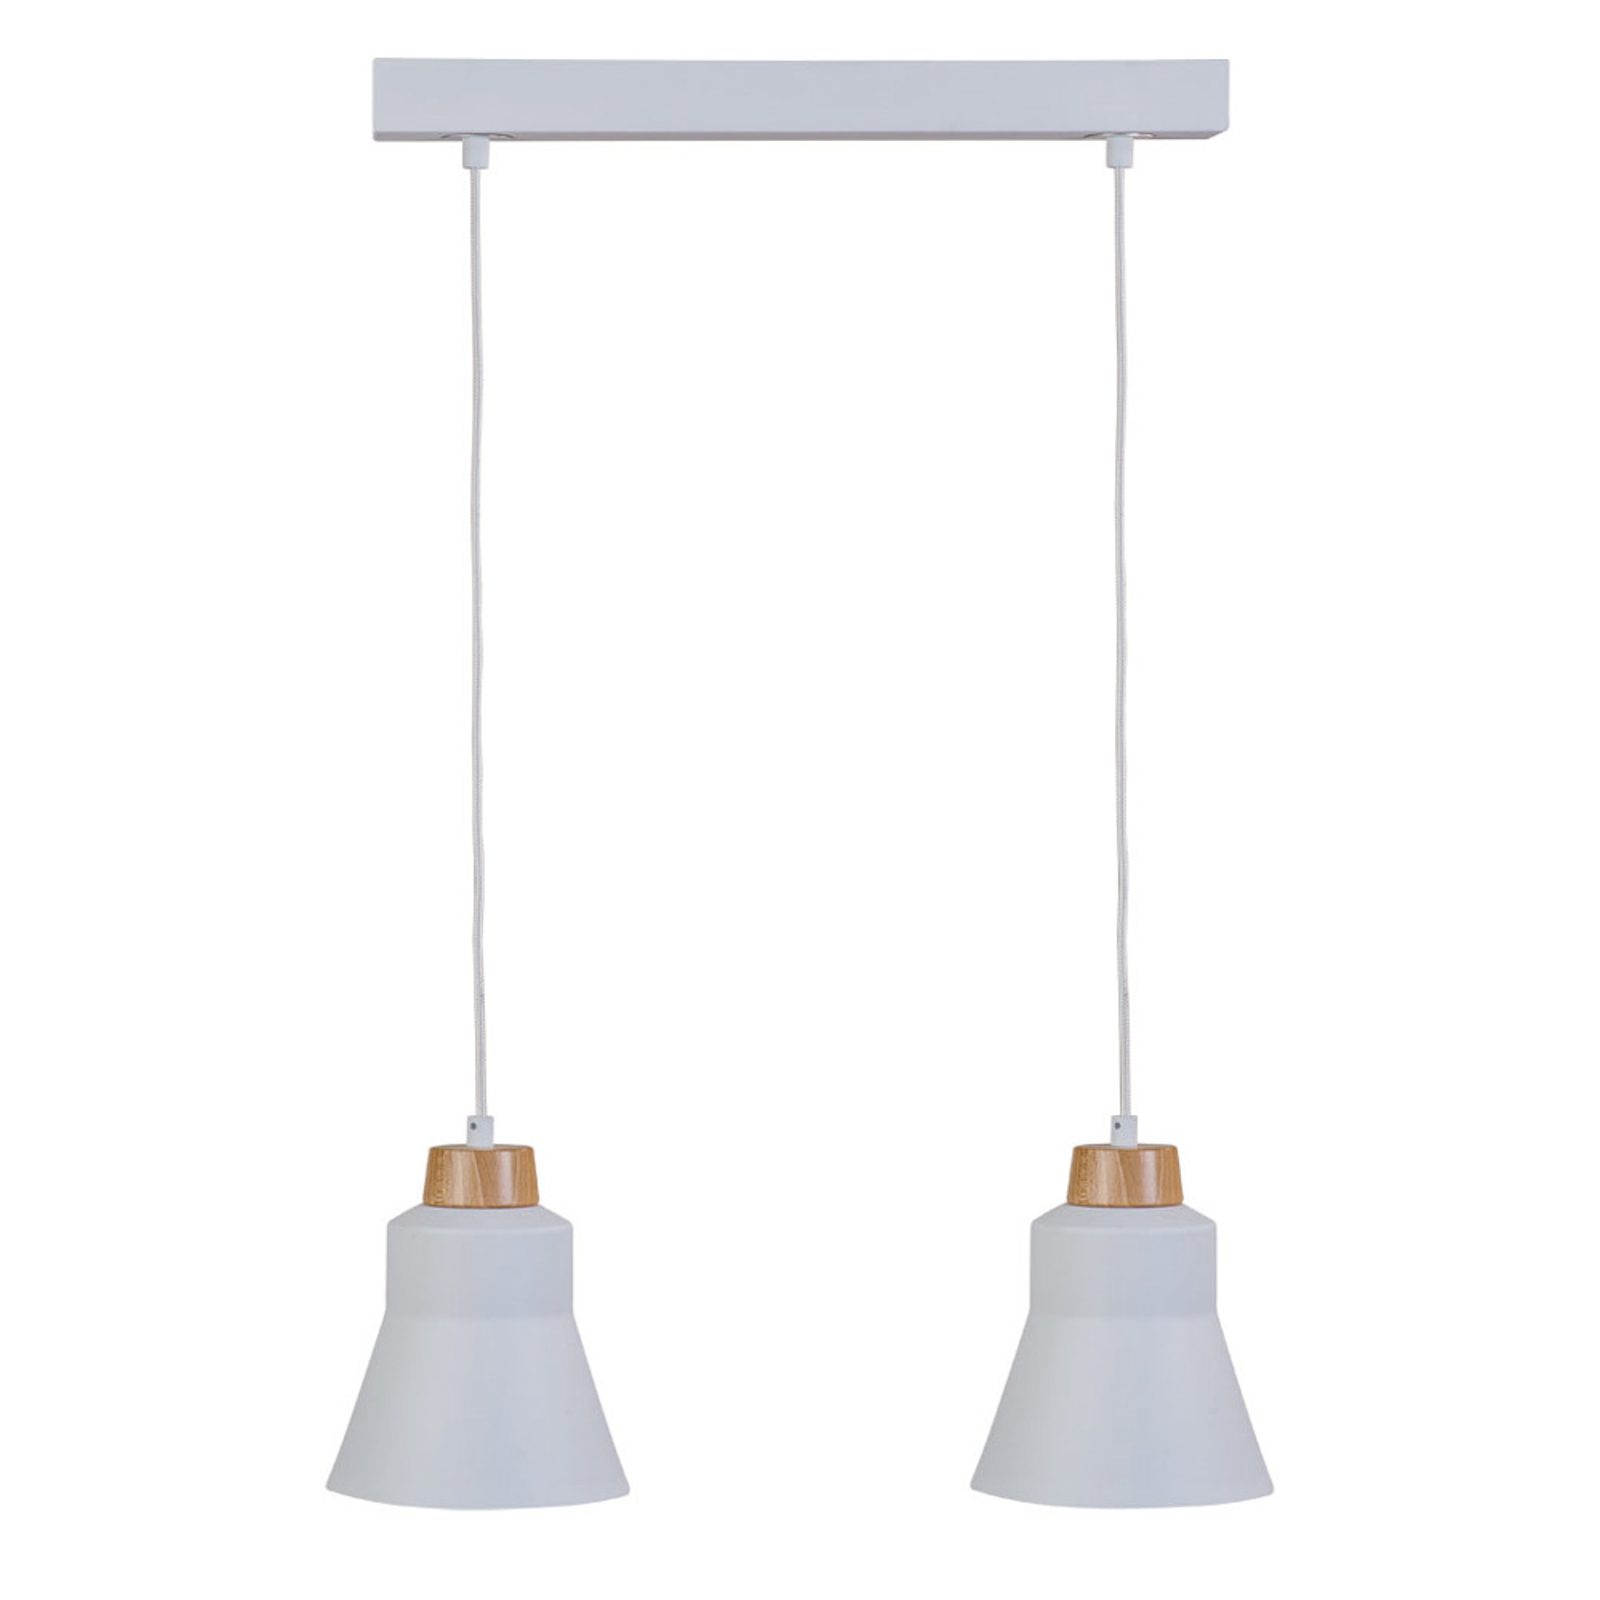 Hanglamp Wood, 2-lamps, wit